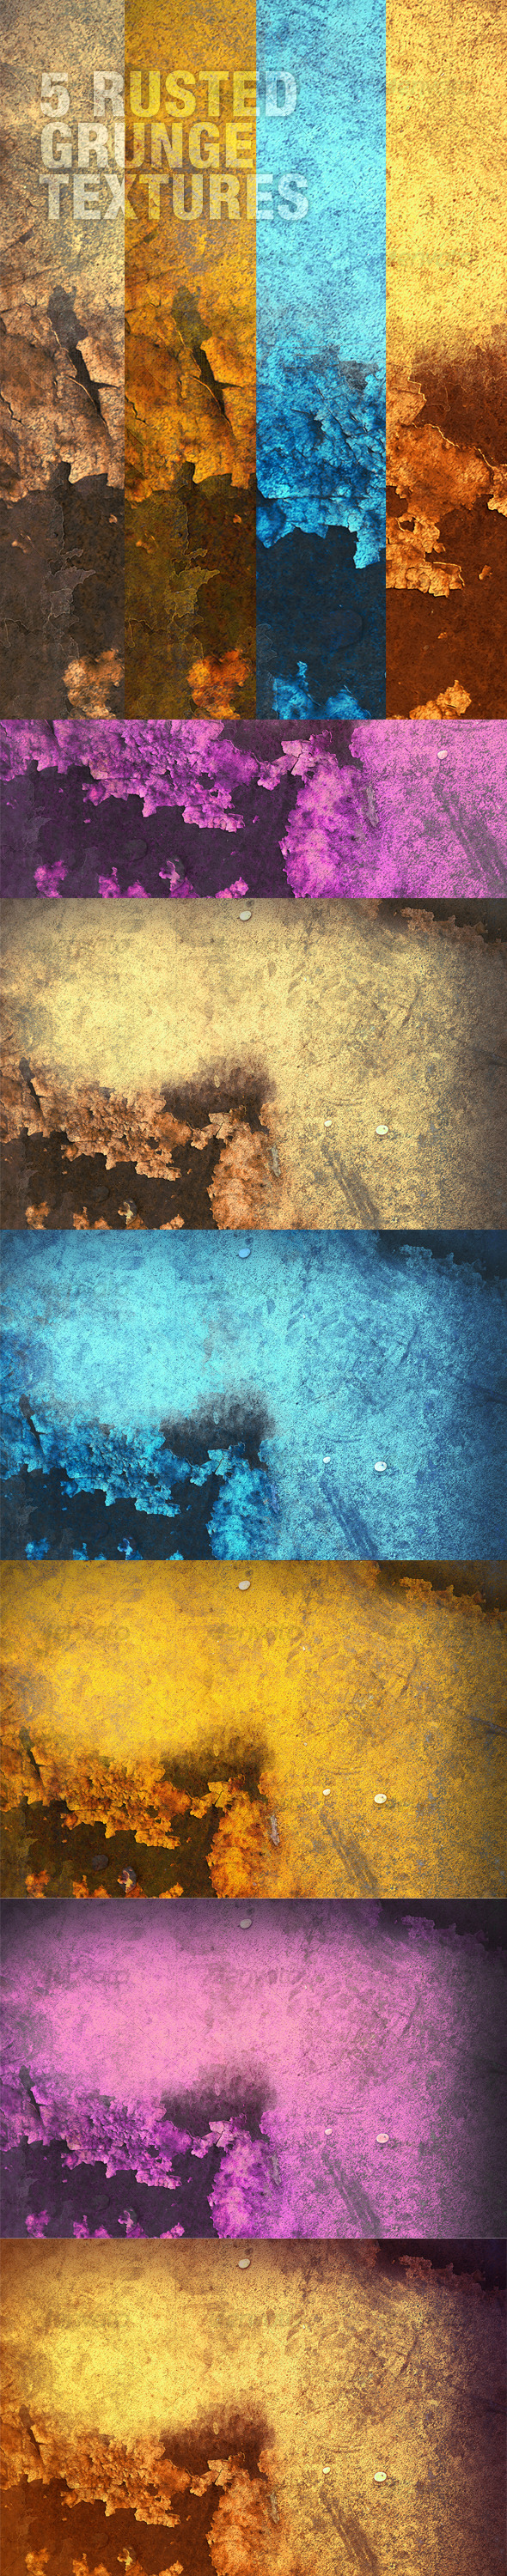 A Rusted Grunge Textures Pack in 5 Colours